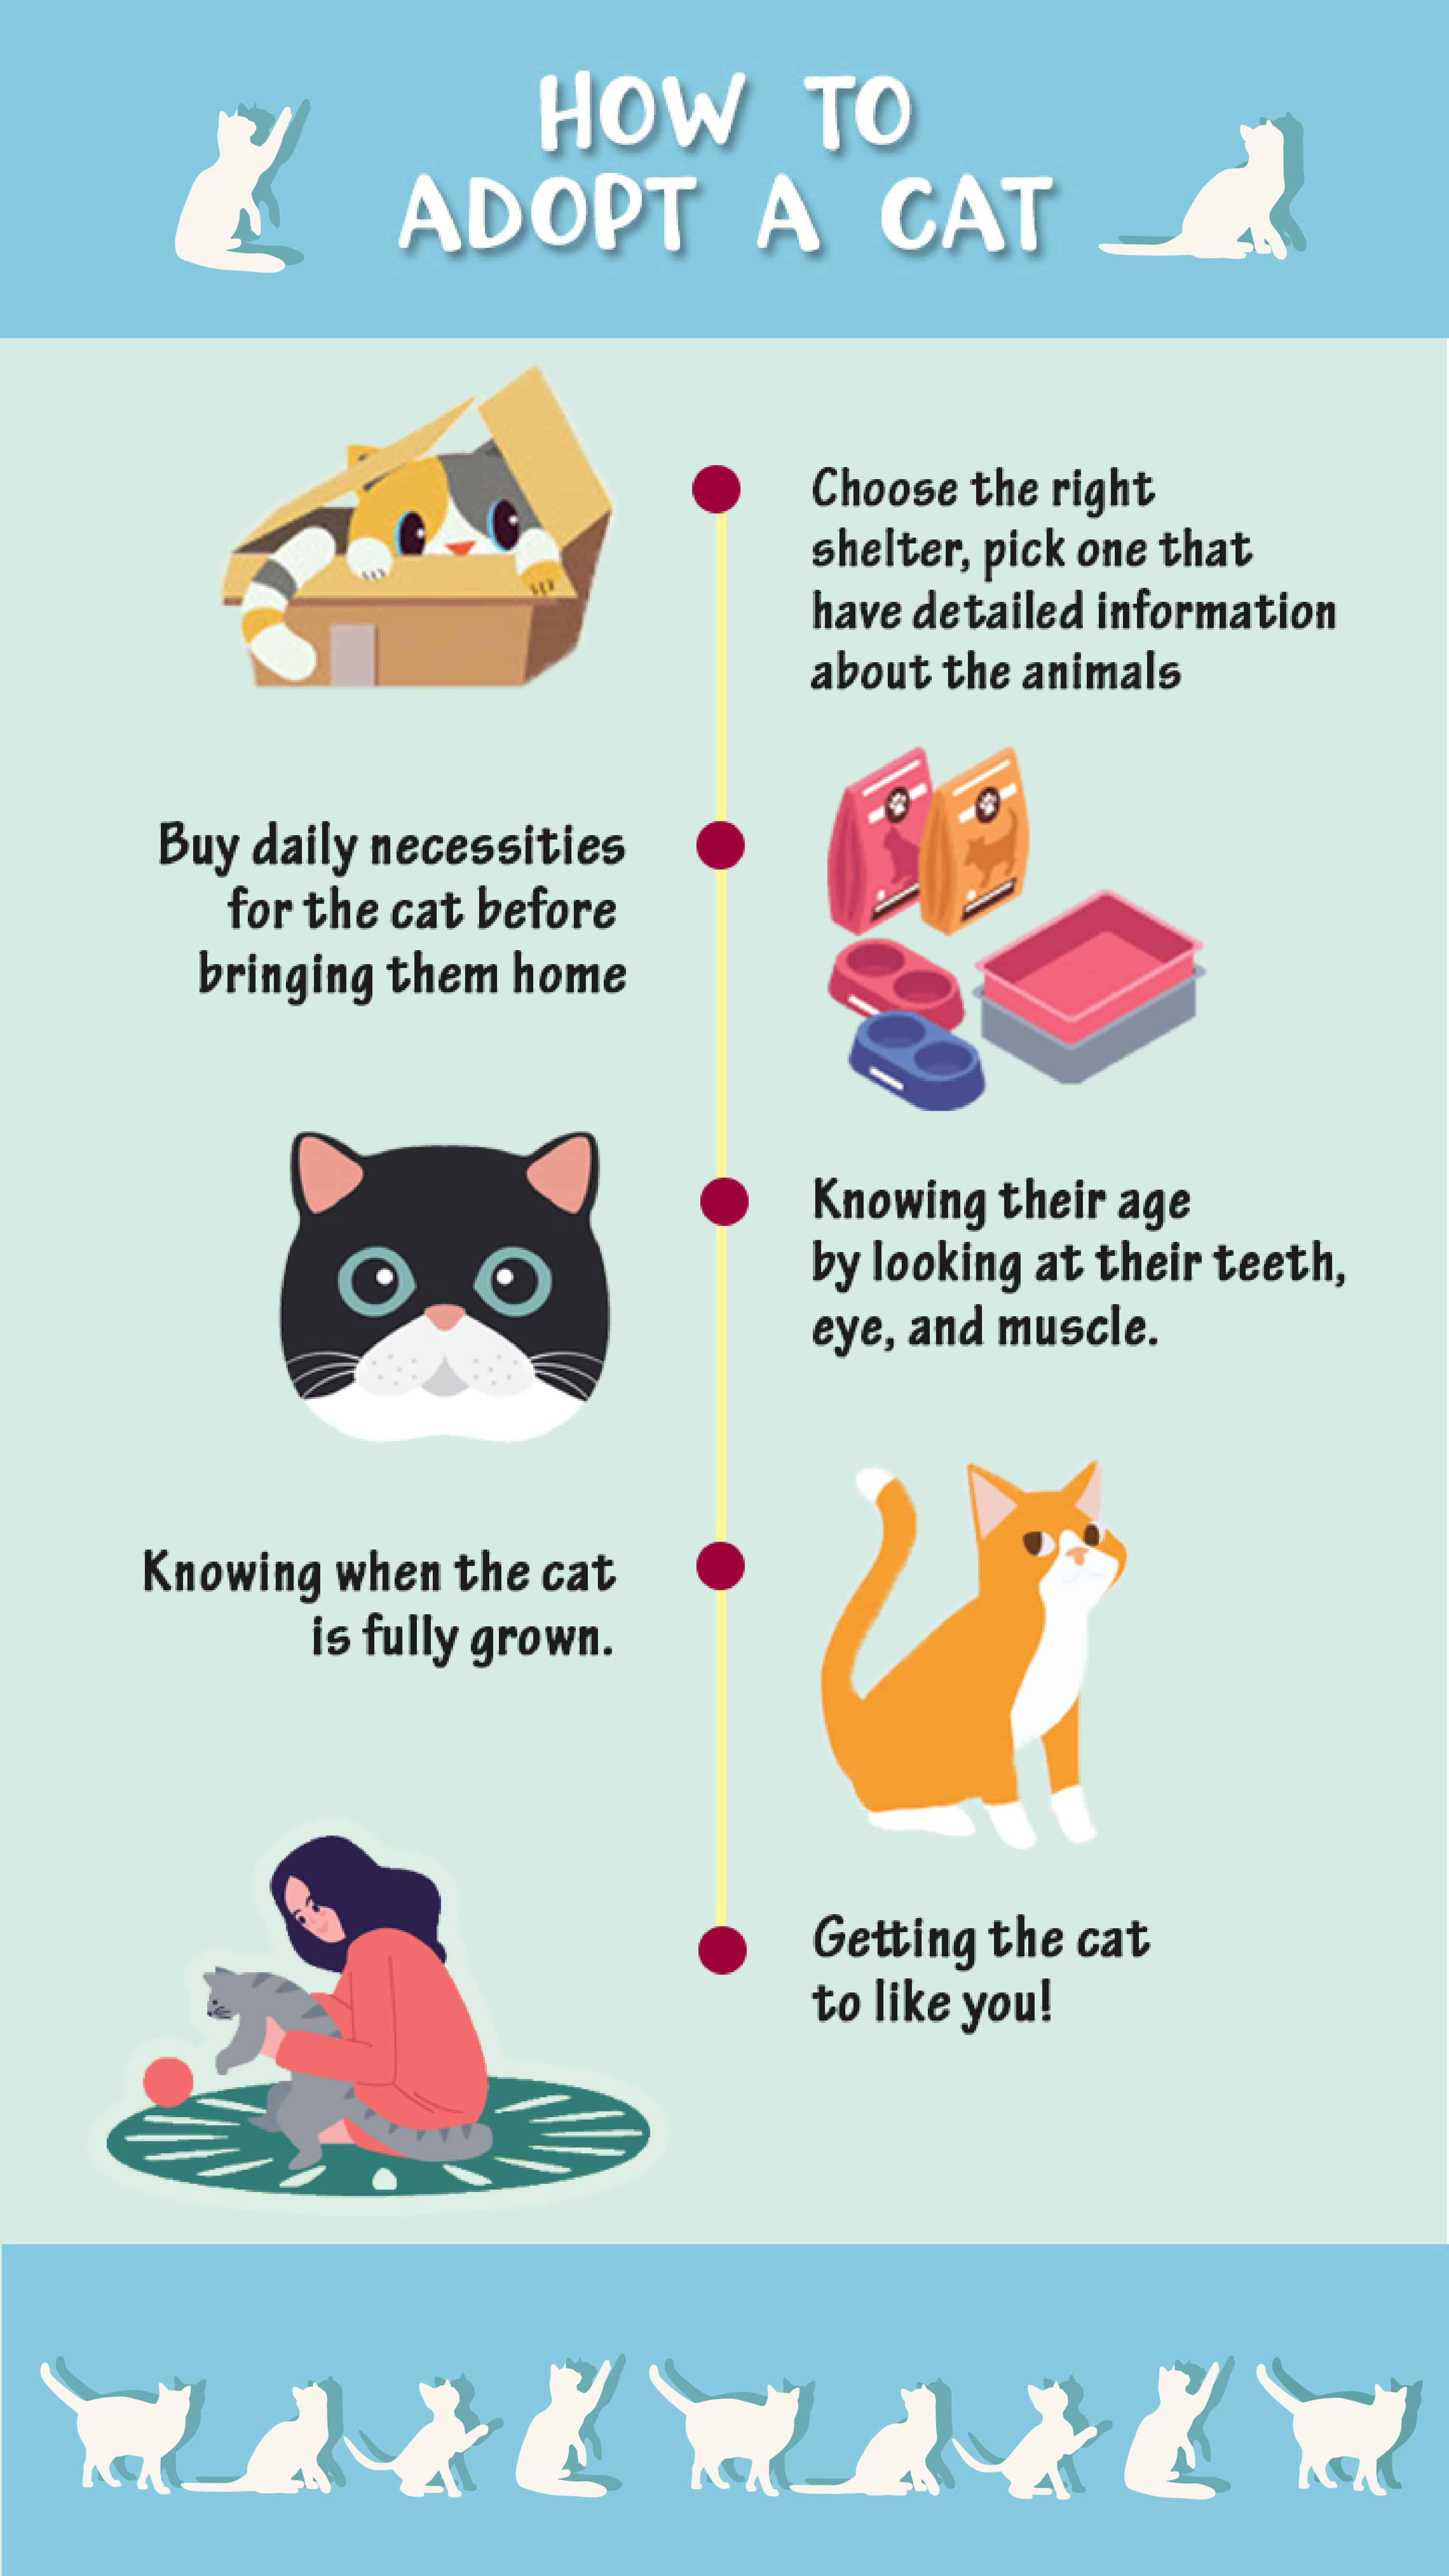 How to adopt a cat infographic